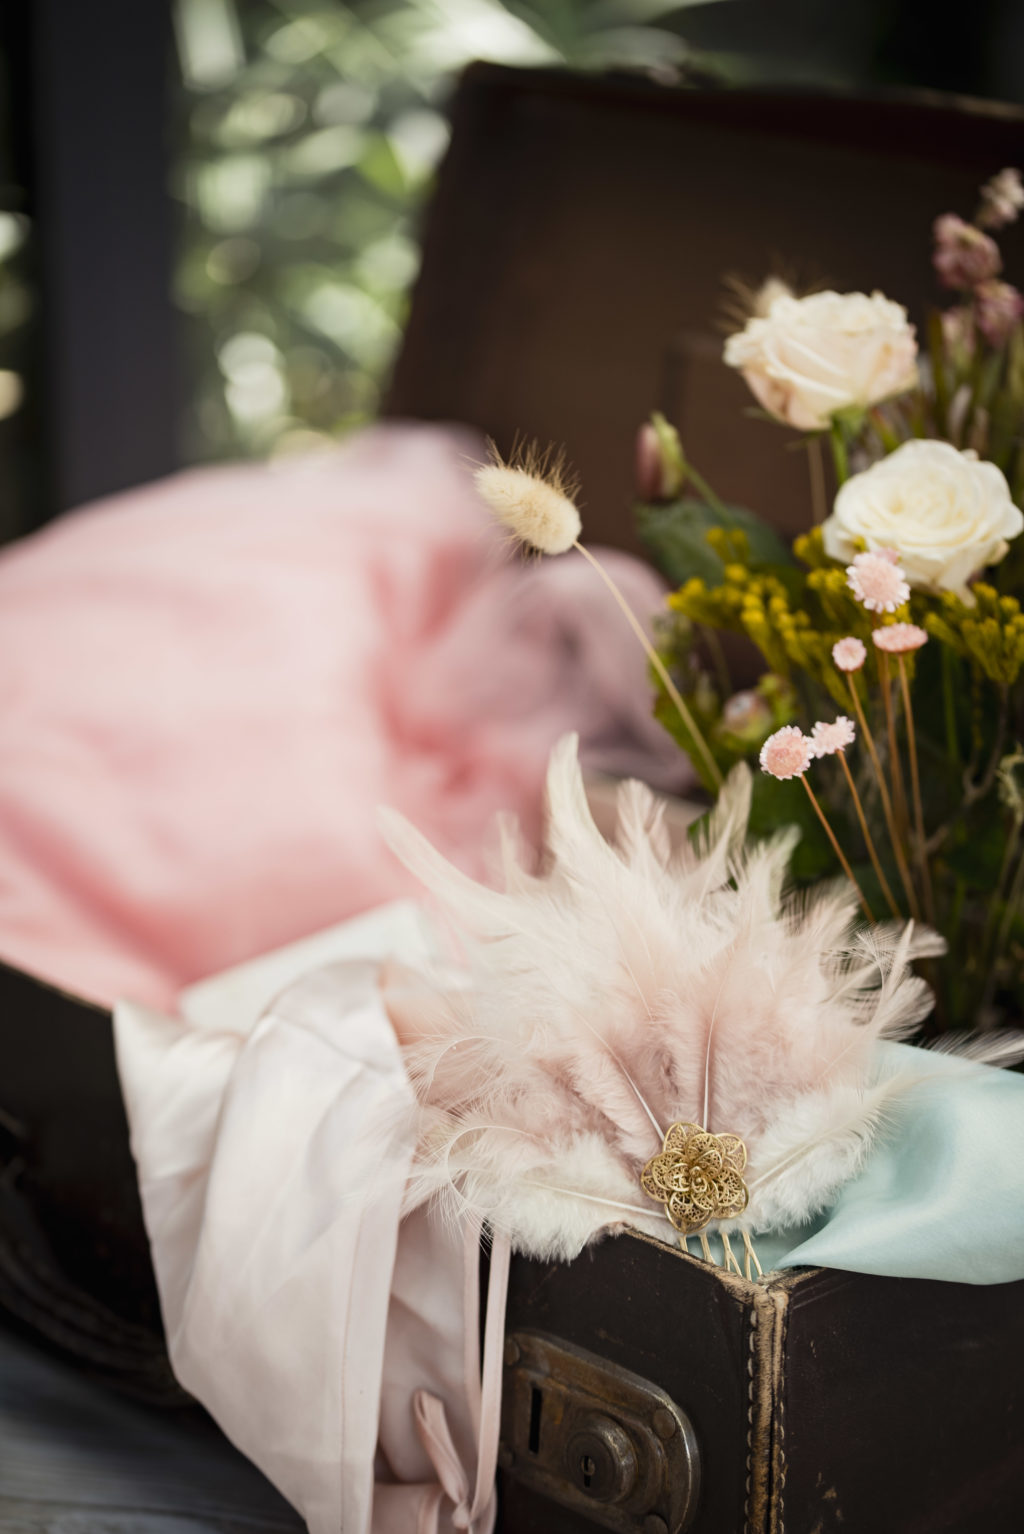 Romantic Italian Wedding - Great Gatsby Meets Downton Abbey